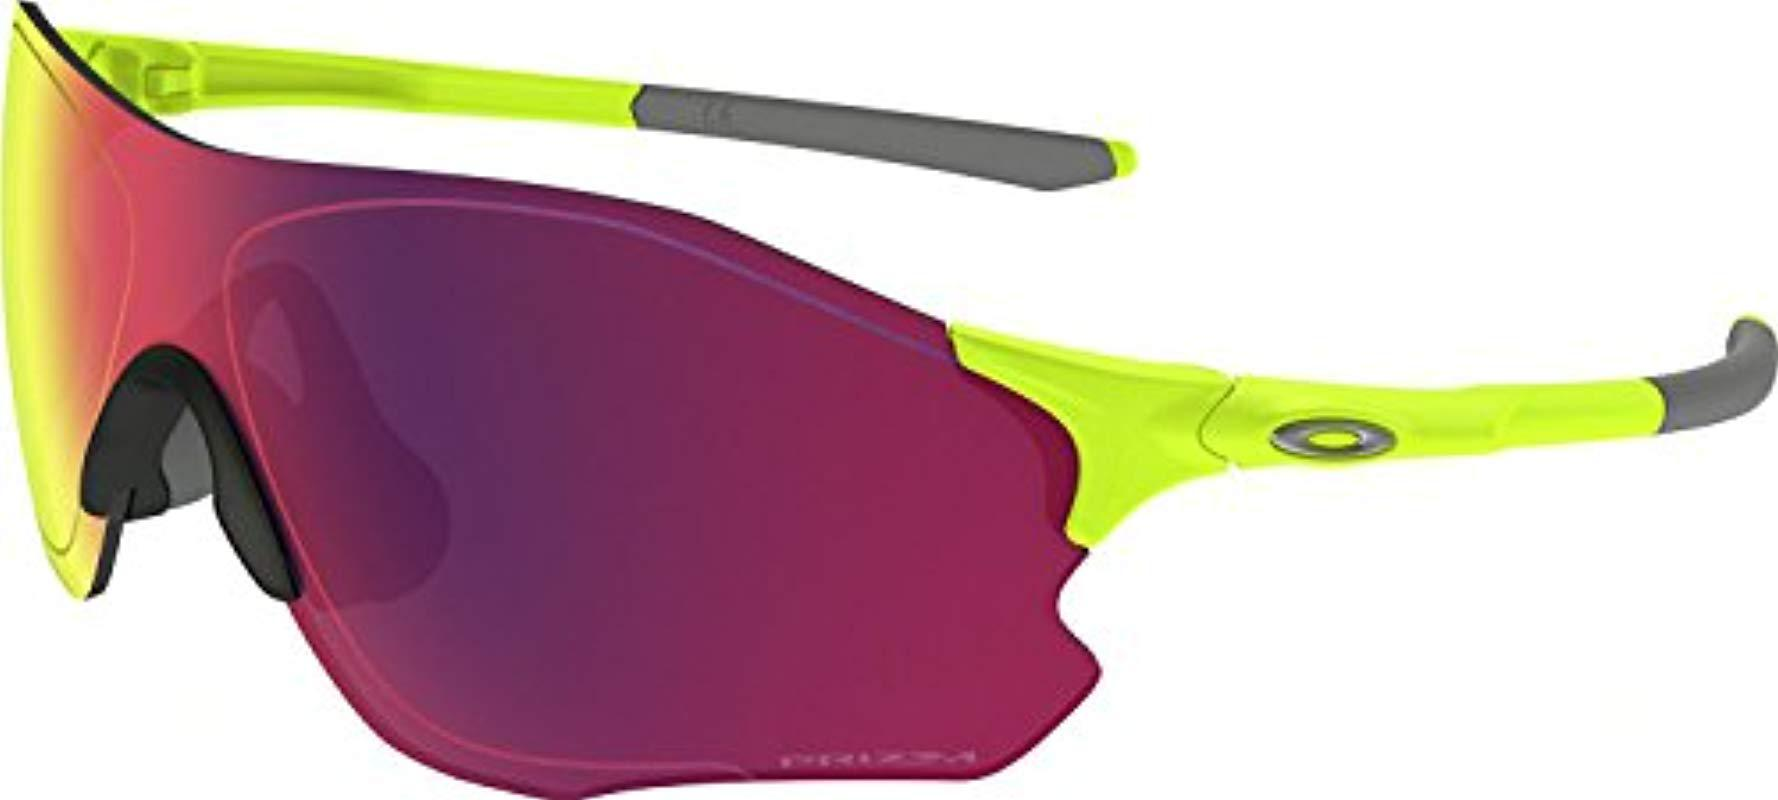 f6f48c374650d Lyst - Oakley Evzero Prizm Golf Sunglasses in Purple for Men - Save 28%